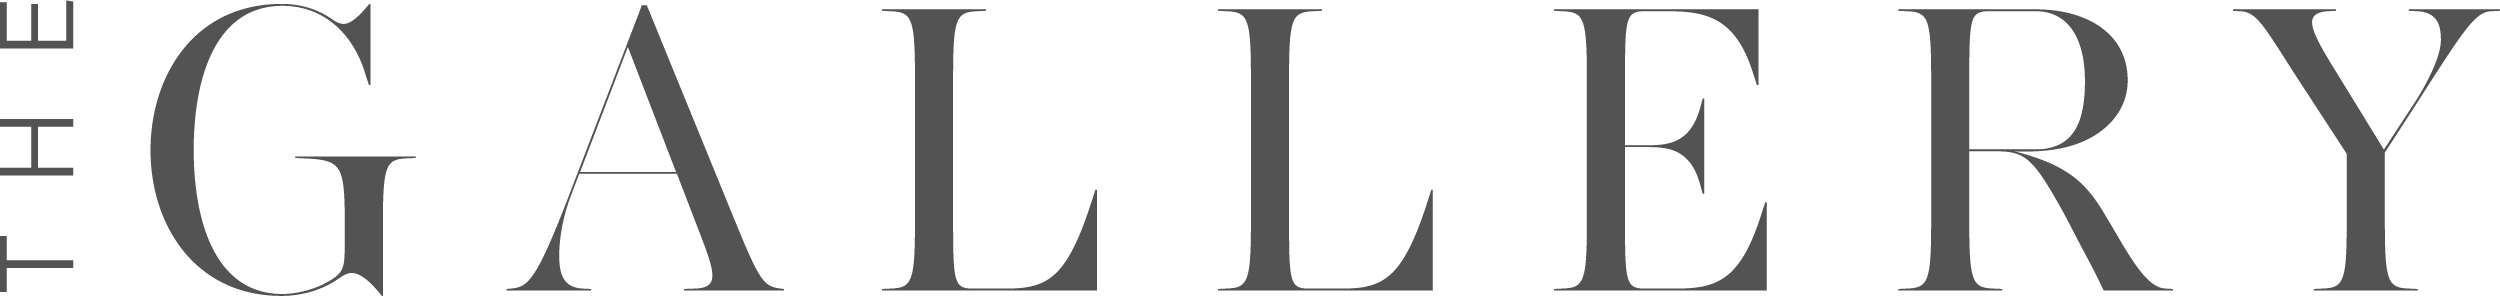 THE GALLERY logo_black.png